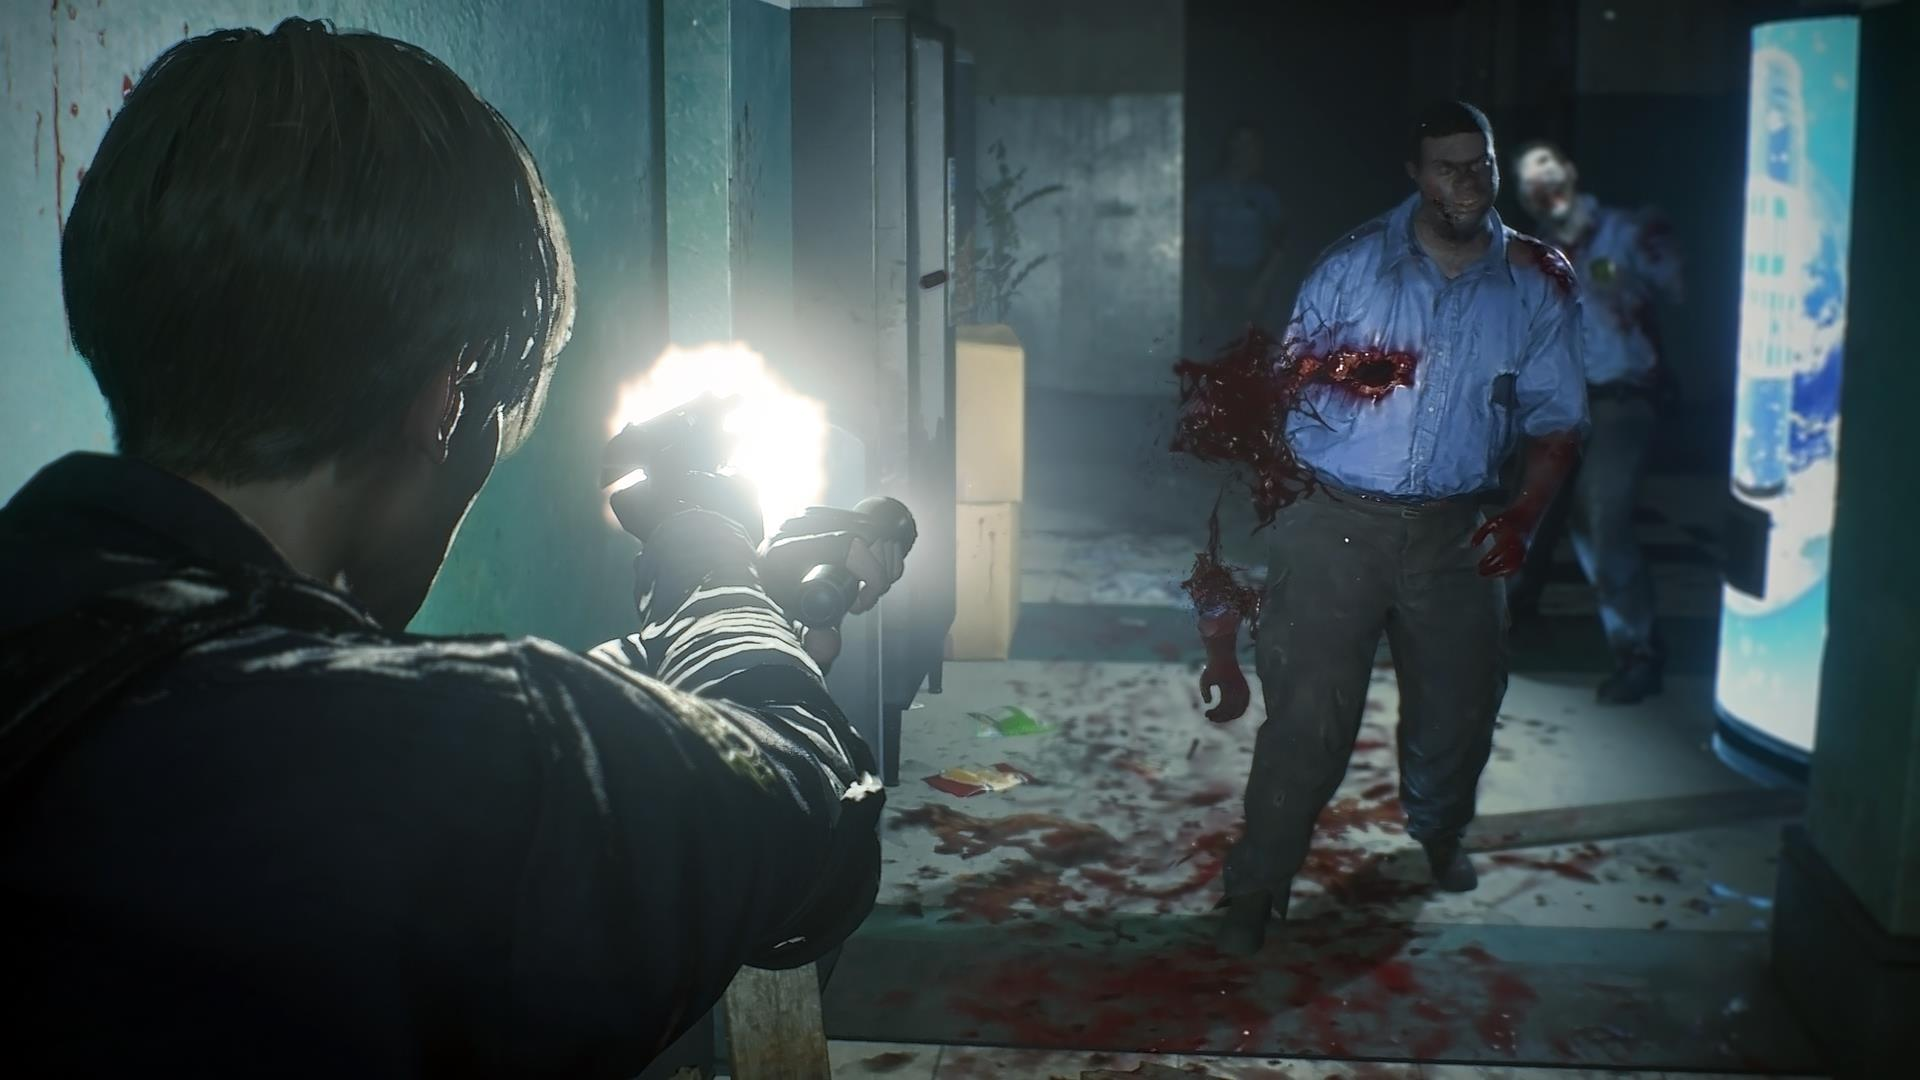 39 Resident Evil 2 39 Producers Talk Remake And Fan Concerns